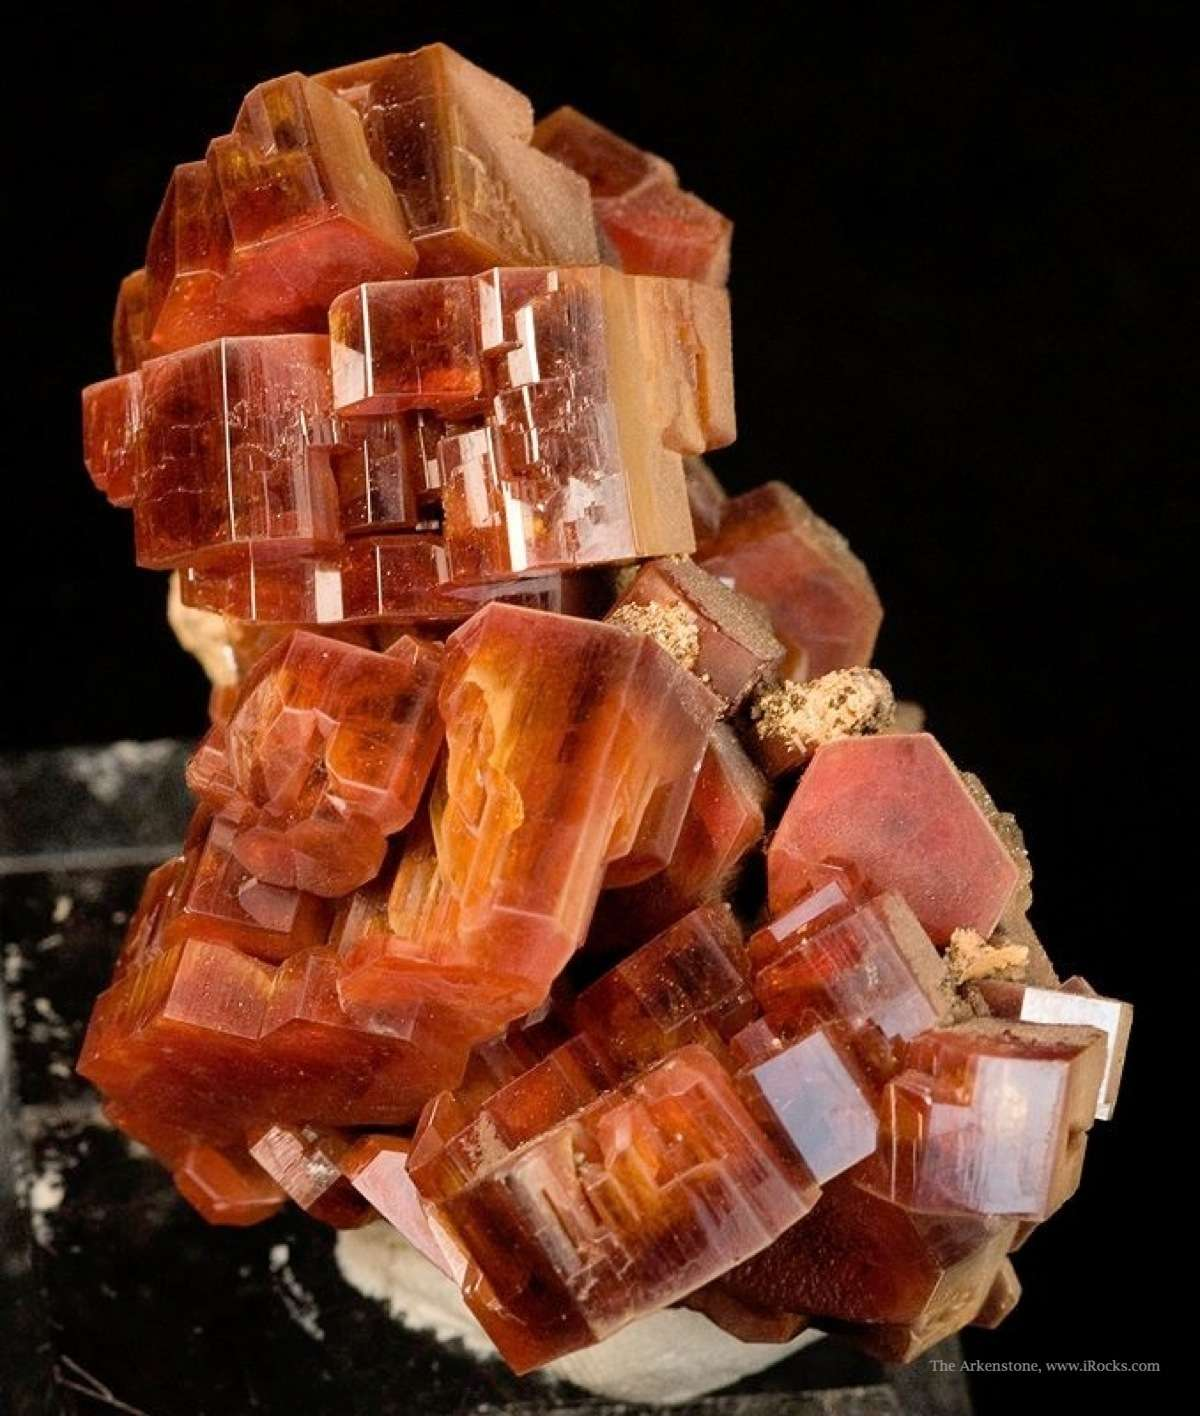 From 2009 noted thick robust crystals aesthetic specimen crystals 2 0